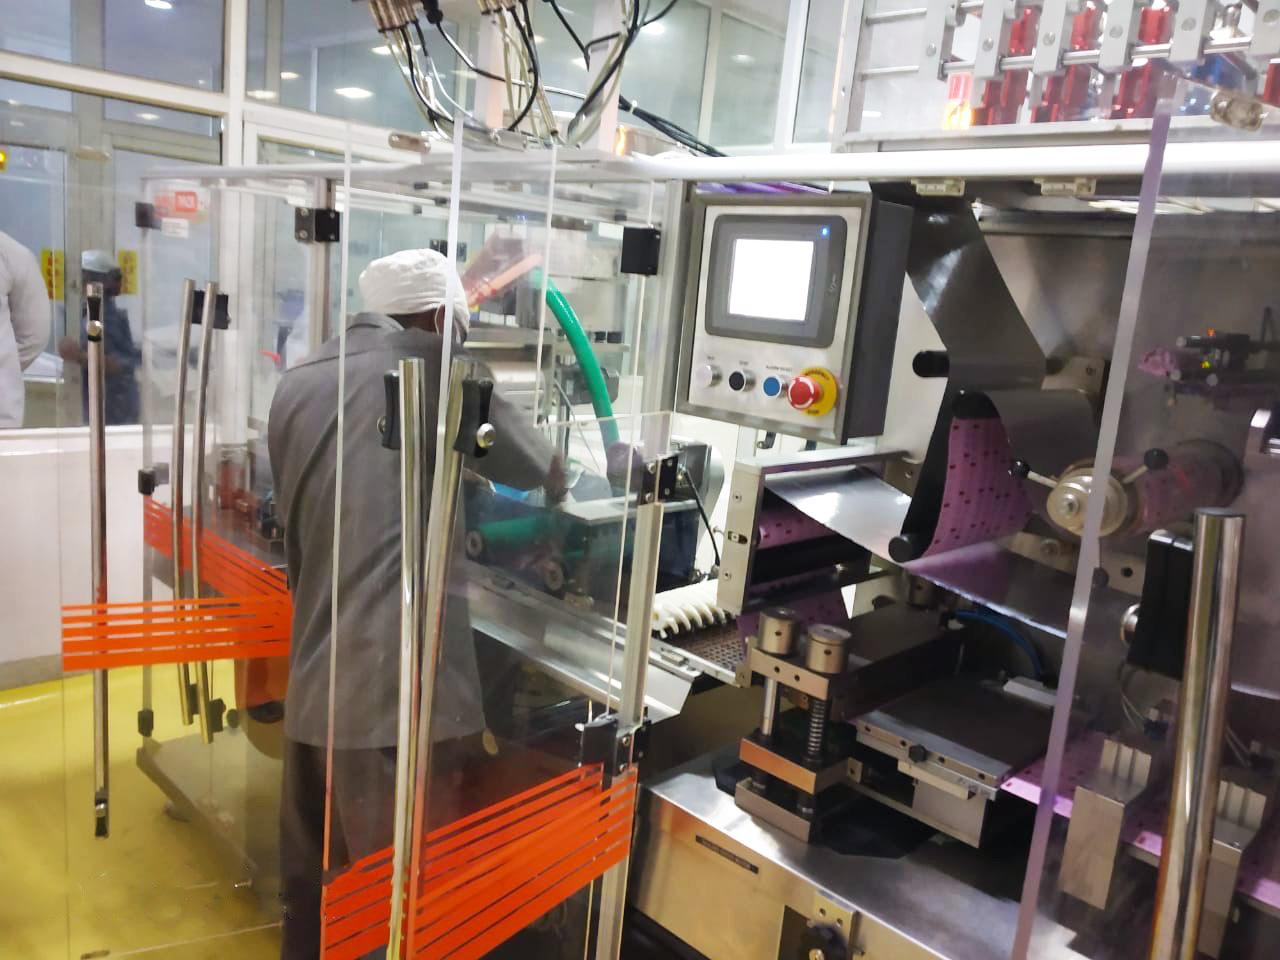 Stadmed uses automated tabled packaging machines for production. Shown here is a machine that produces packaging of the blistering variety.